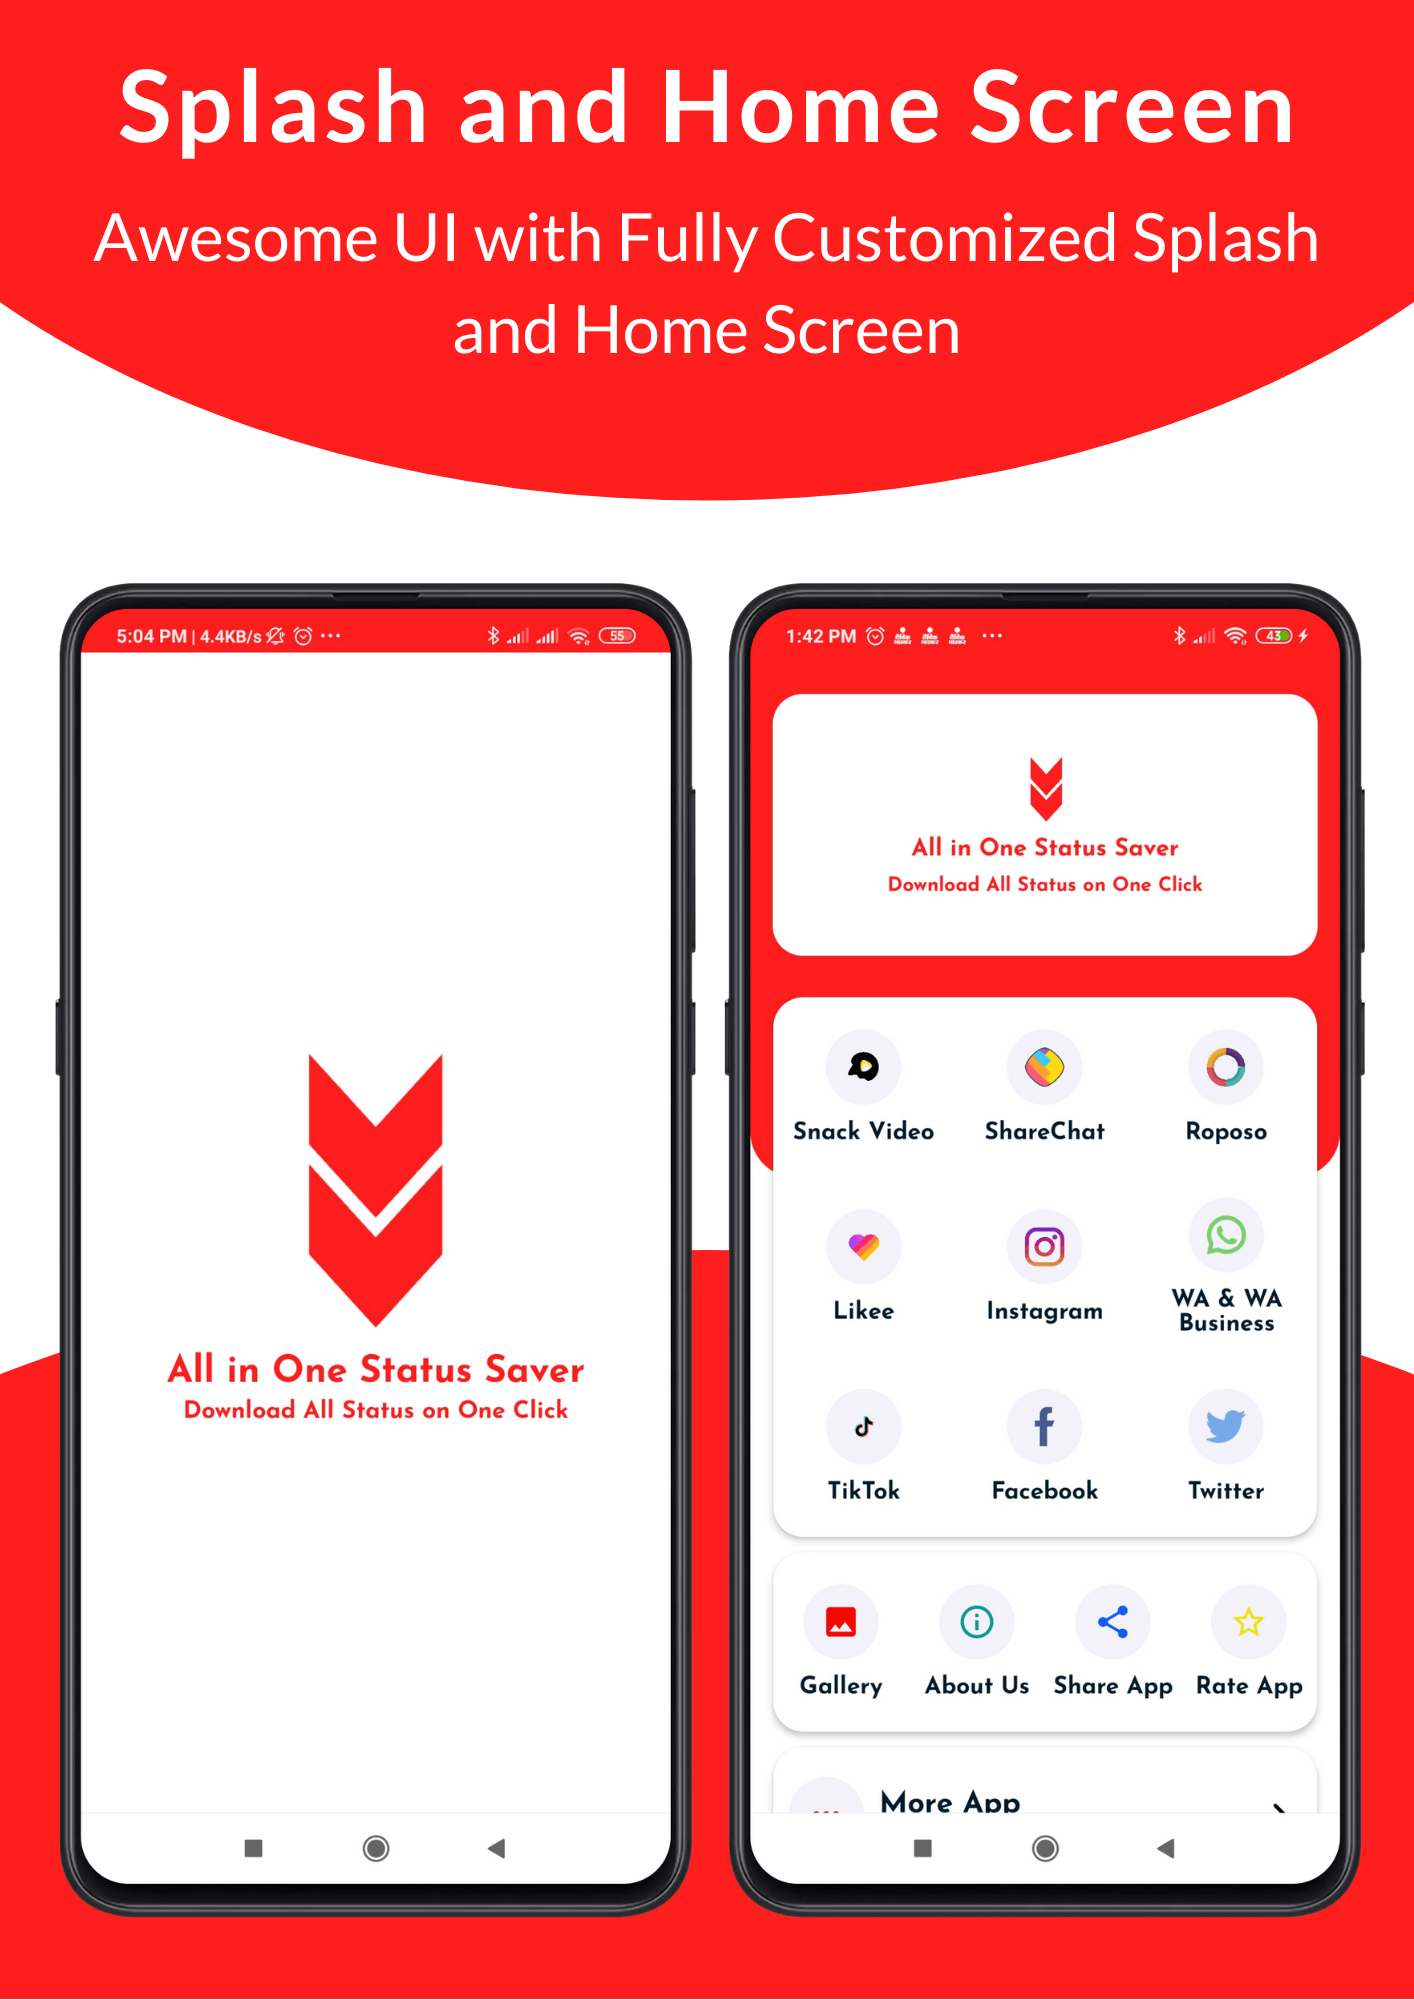 All in One Status Saver - SnackVideo, ShareChat, Roposo, Likee, Whatsapp, FB, Insta, TikTok, Twitter - 4